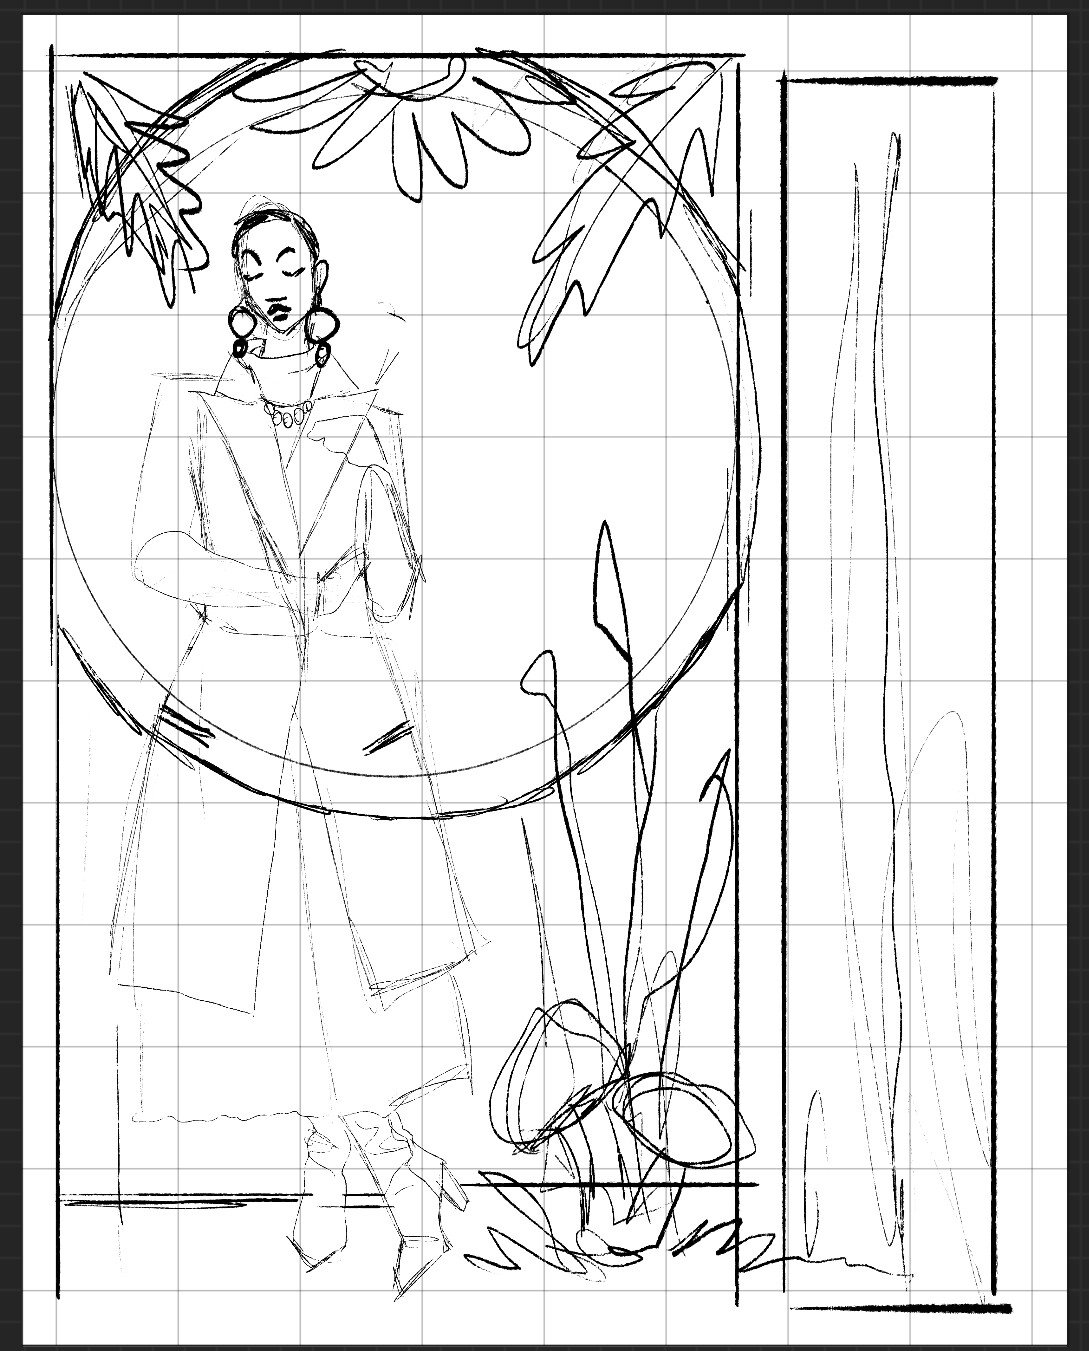 A closer look at a slightly more refined concept sketch for thumbnail 8.